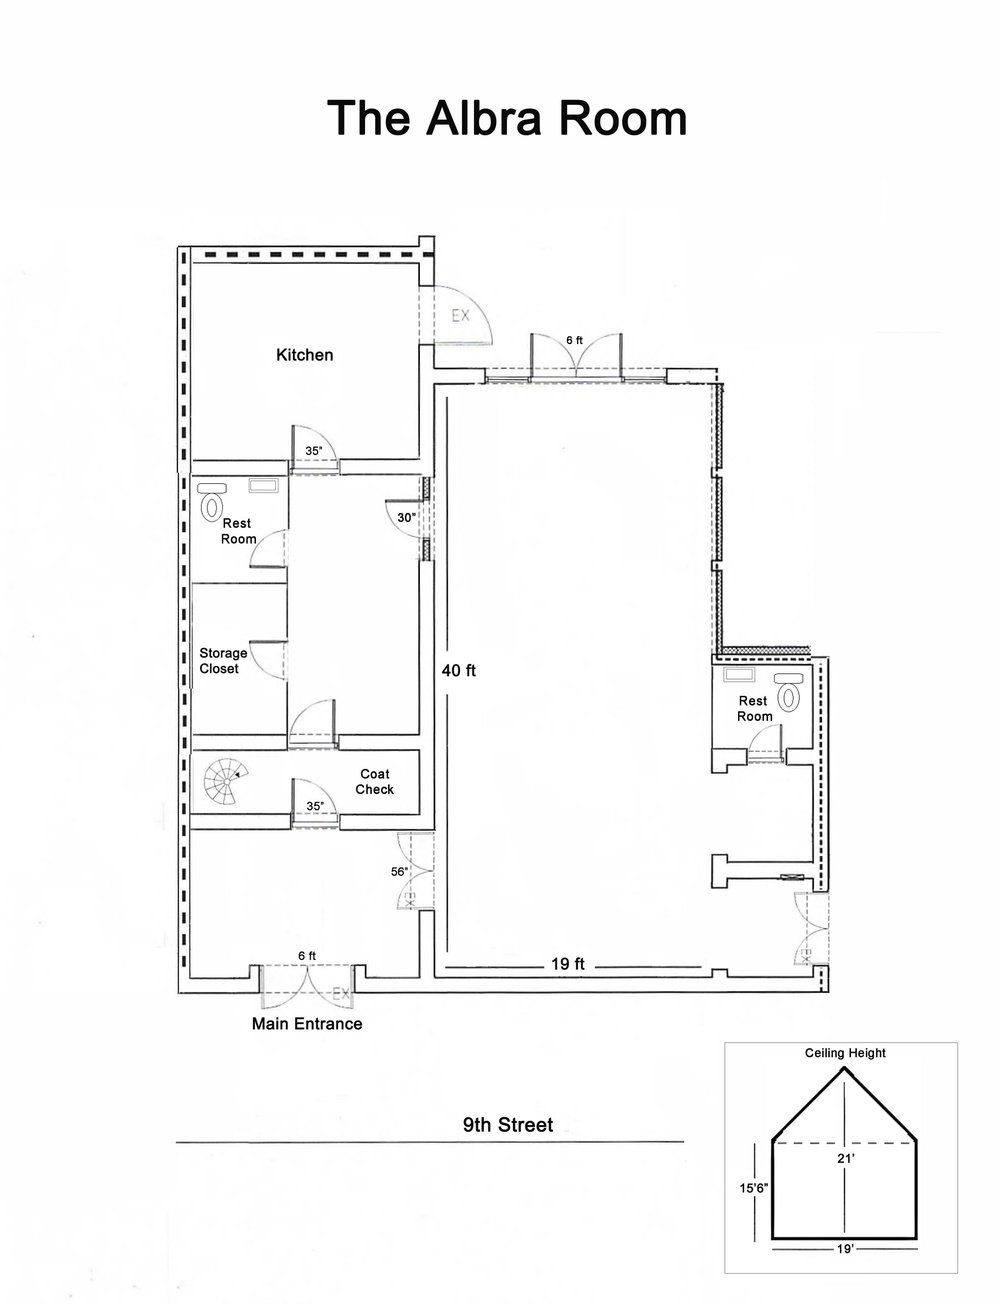 Albra Room Floorplan.jpg